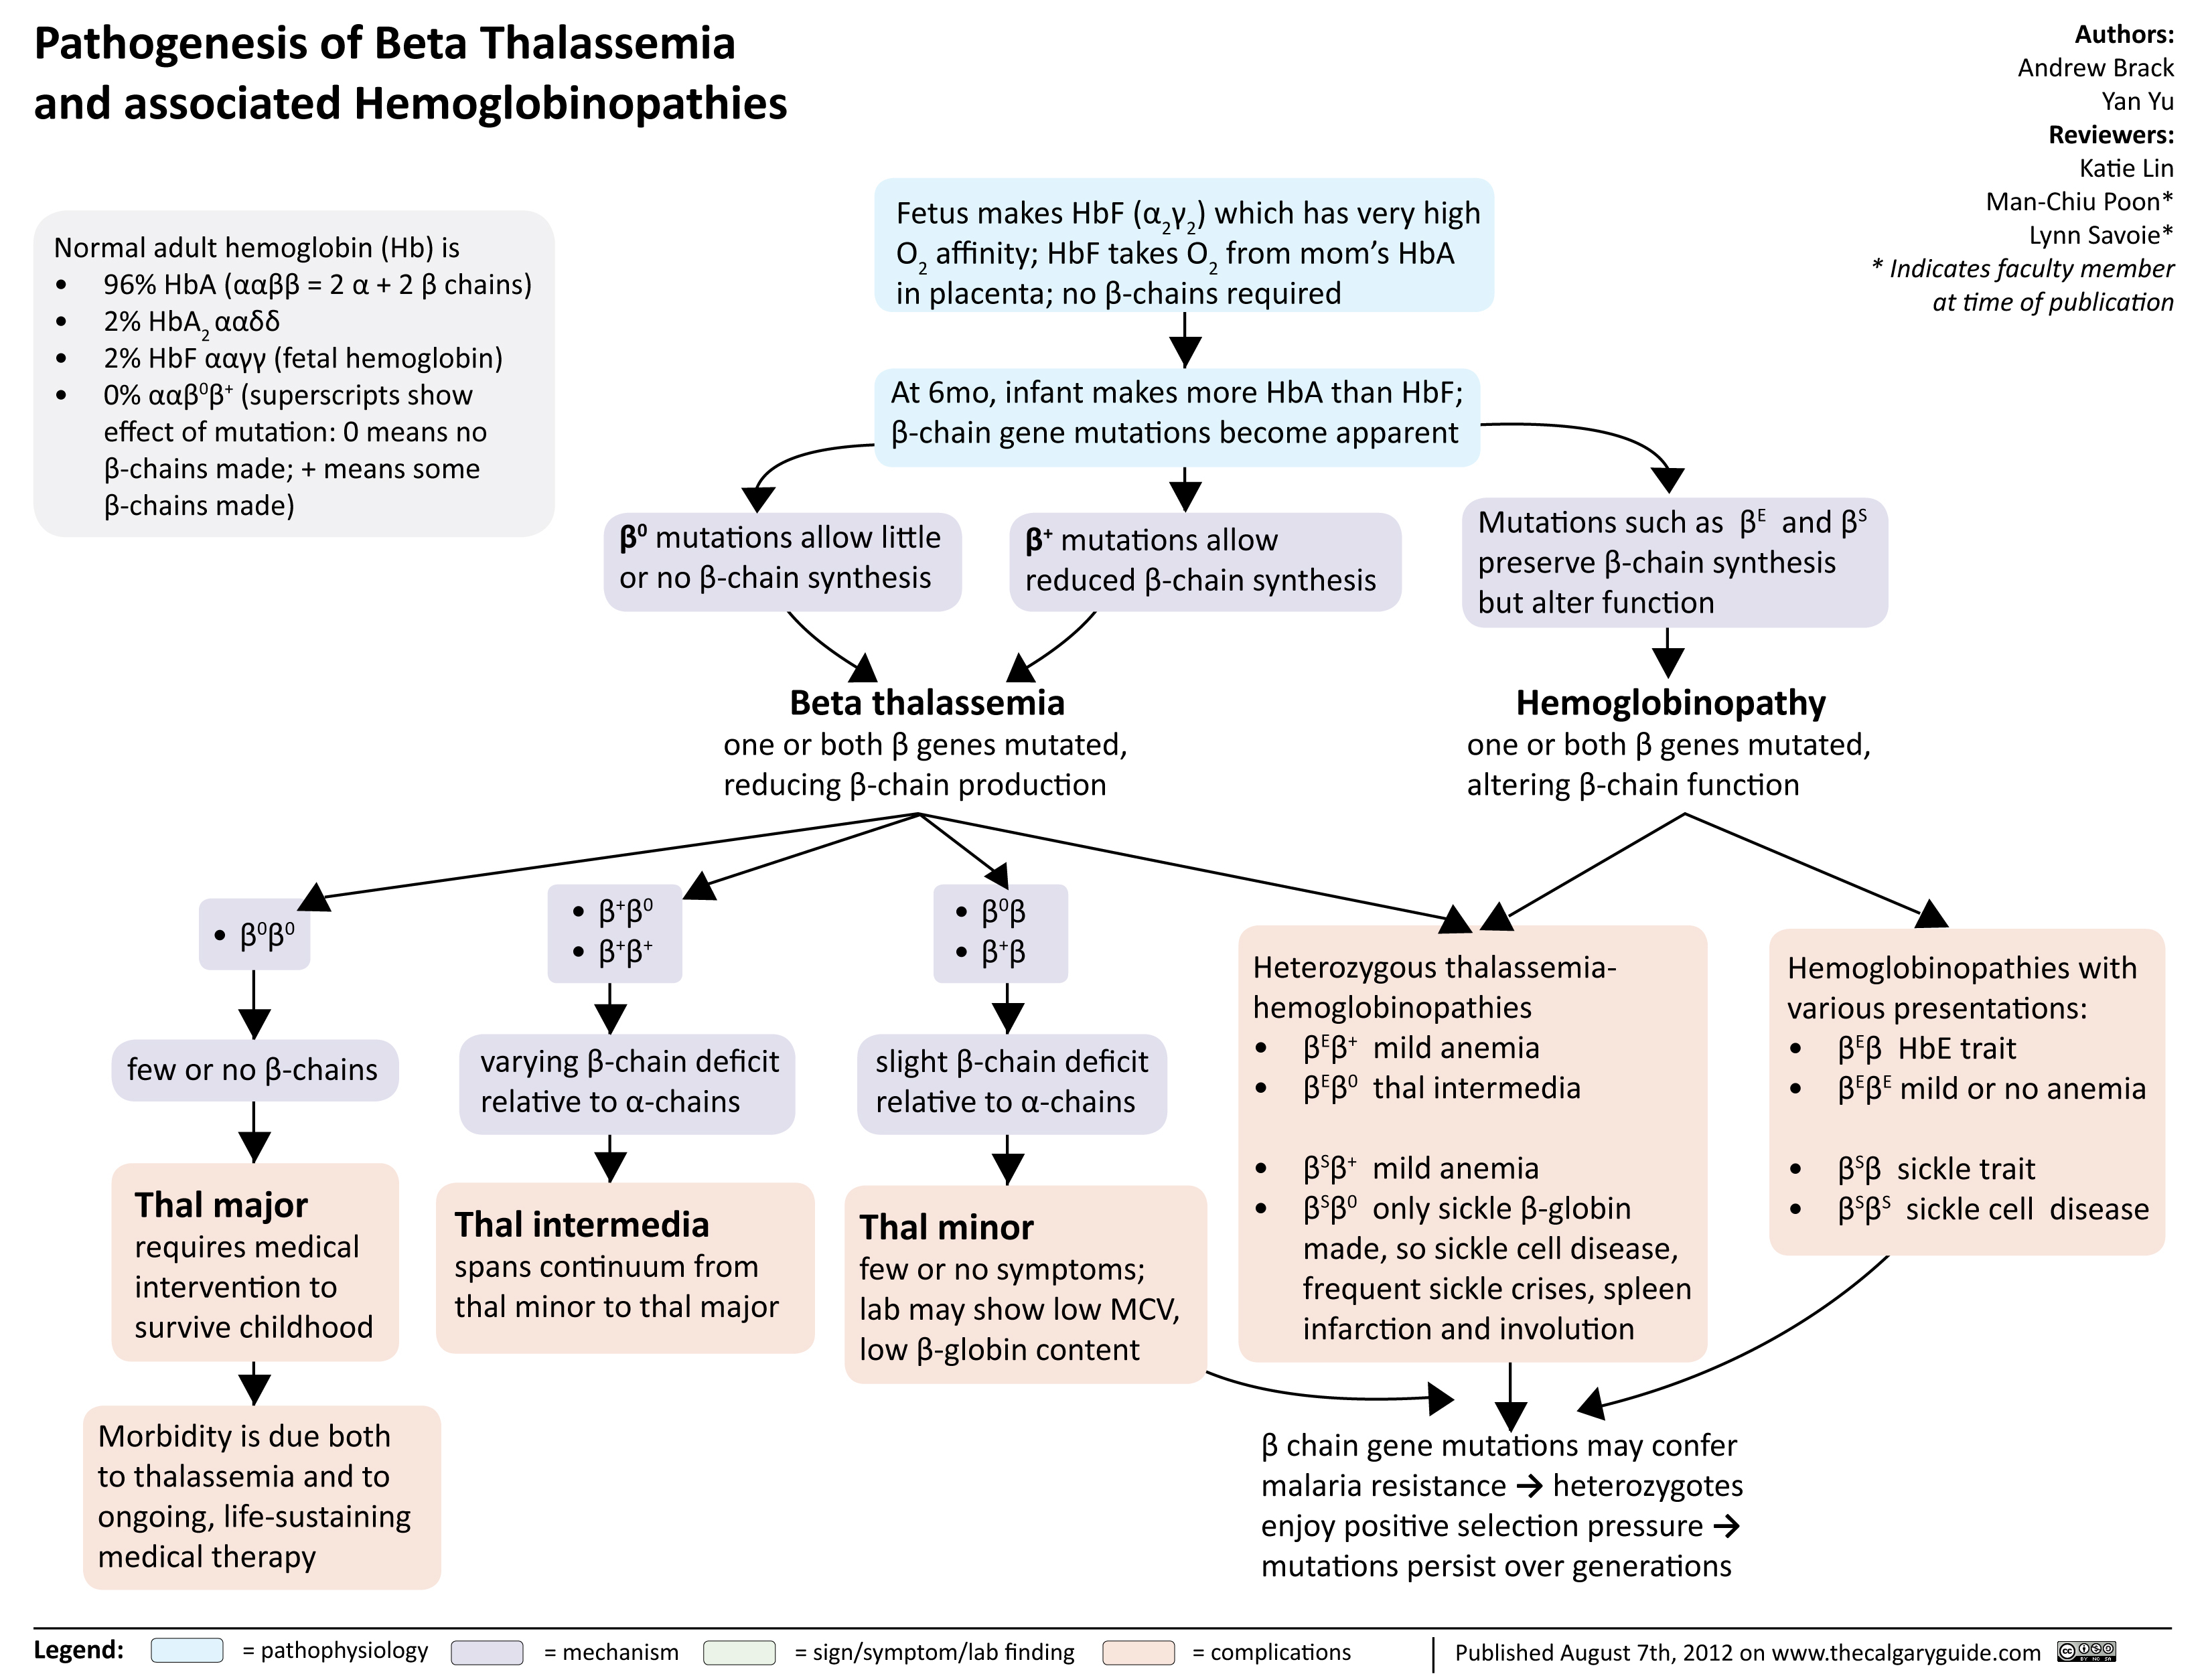 Pathogenesis of Beta Thalassemia